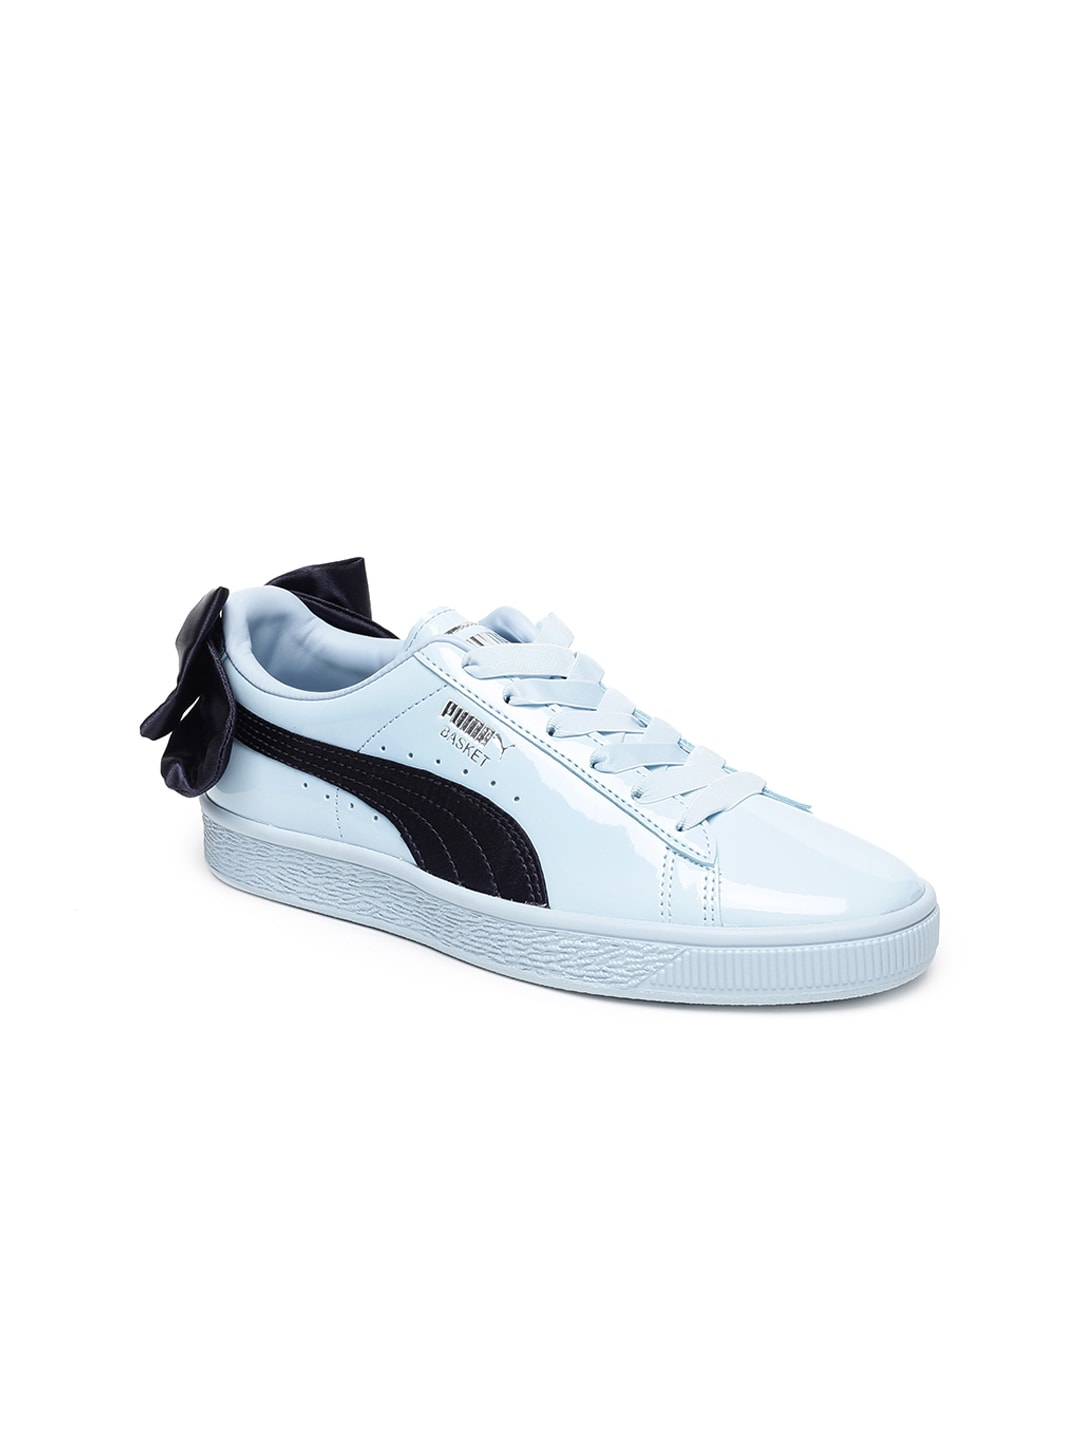 72687accfde Puma Basket Bow Patent Jr Blue Sneakers for girls in India - Buy at ...